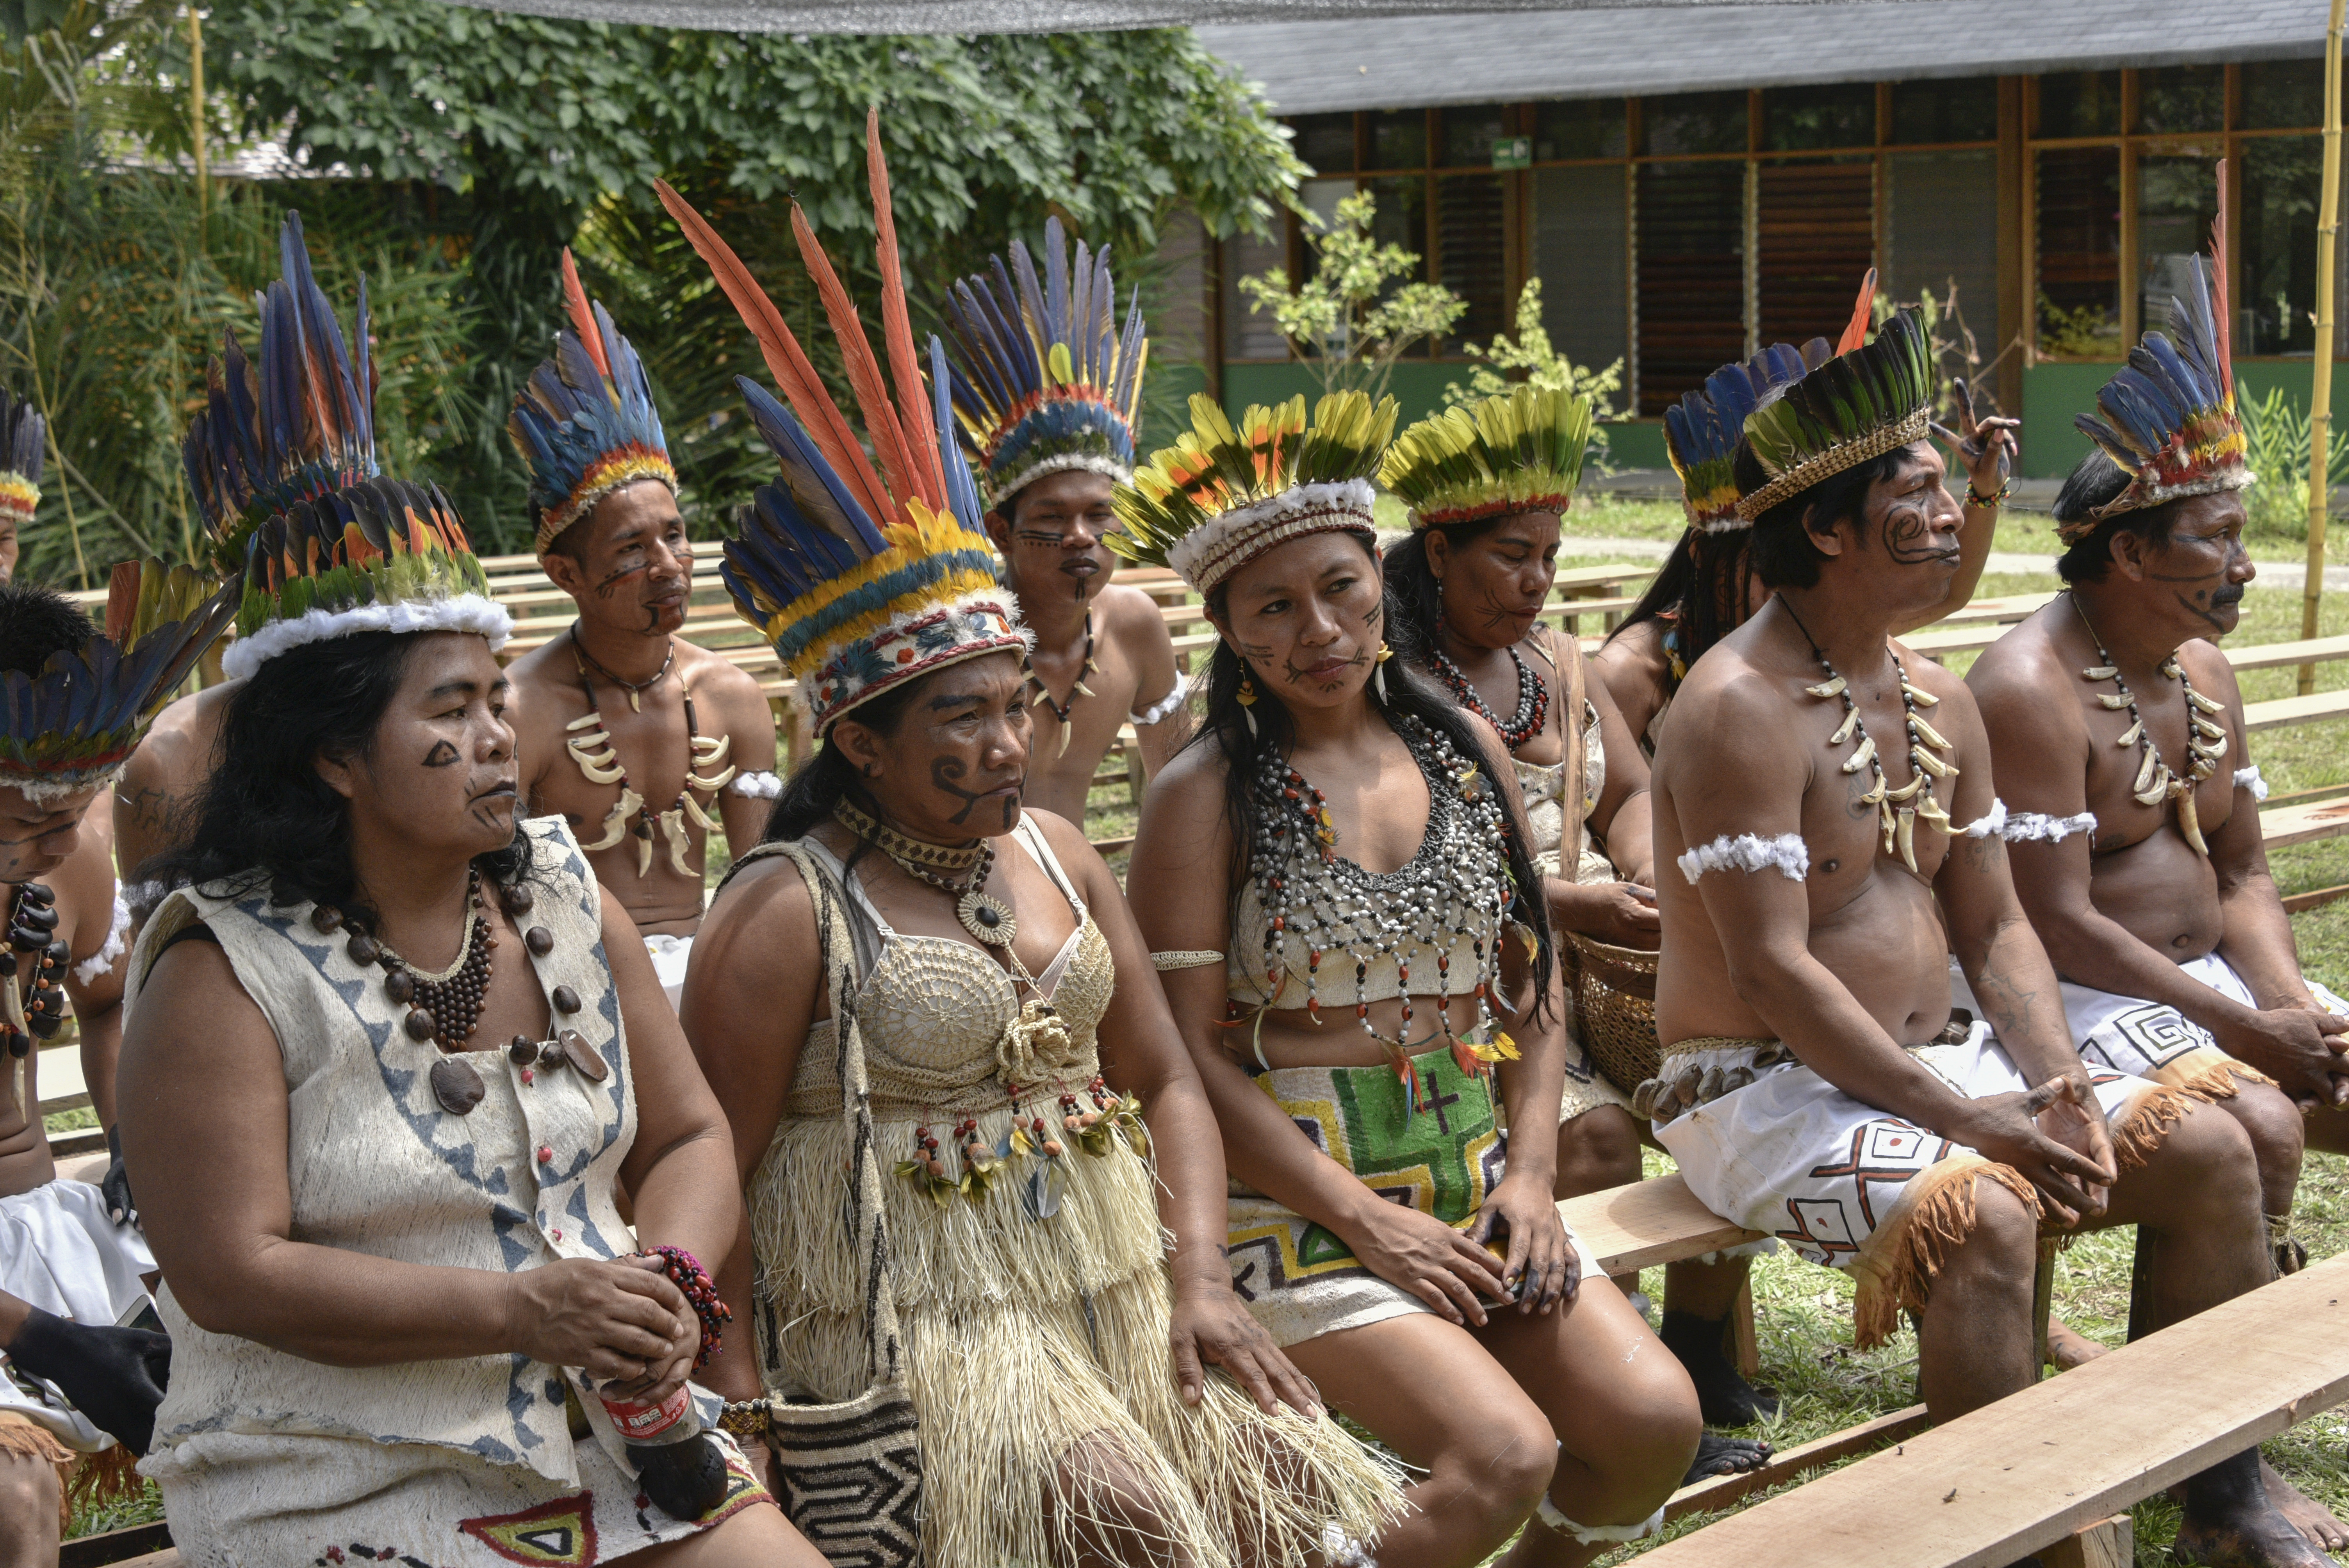 The Unique Struggle Indigenous Communities in Colombia Face With COVID-19